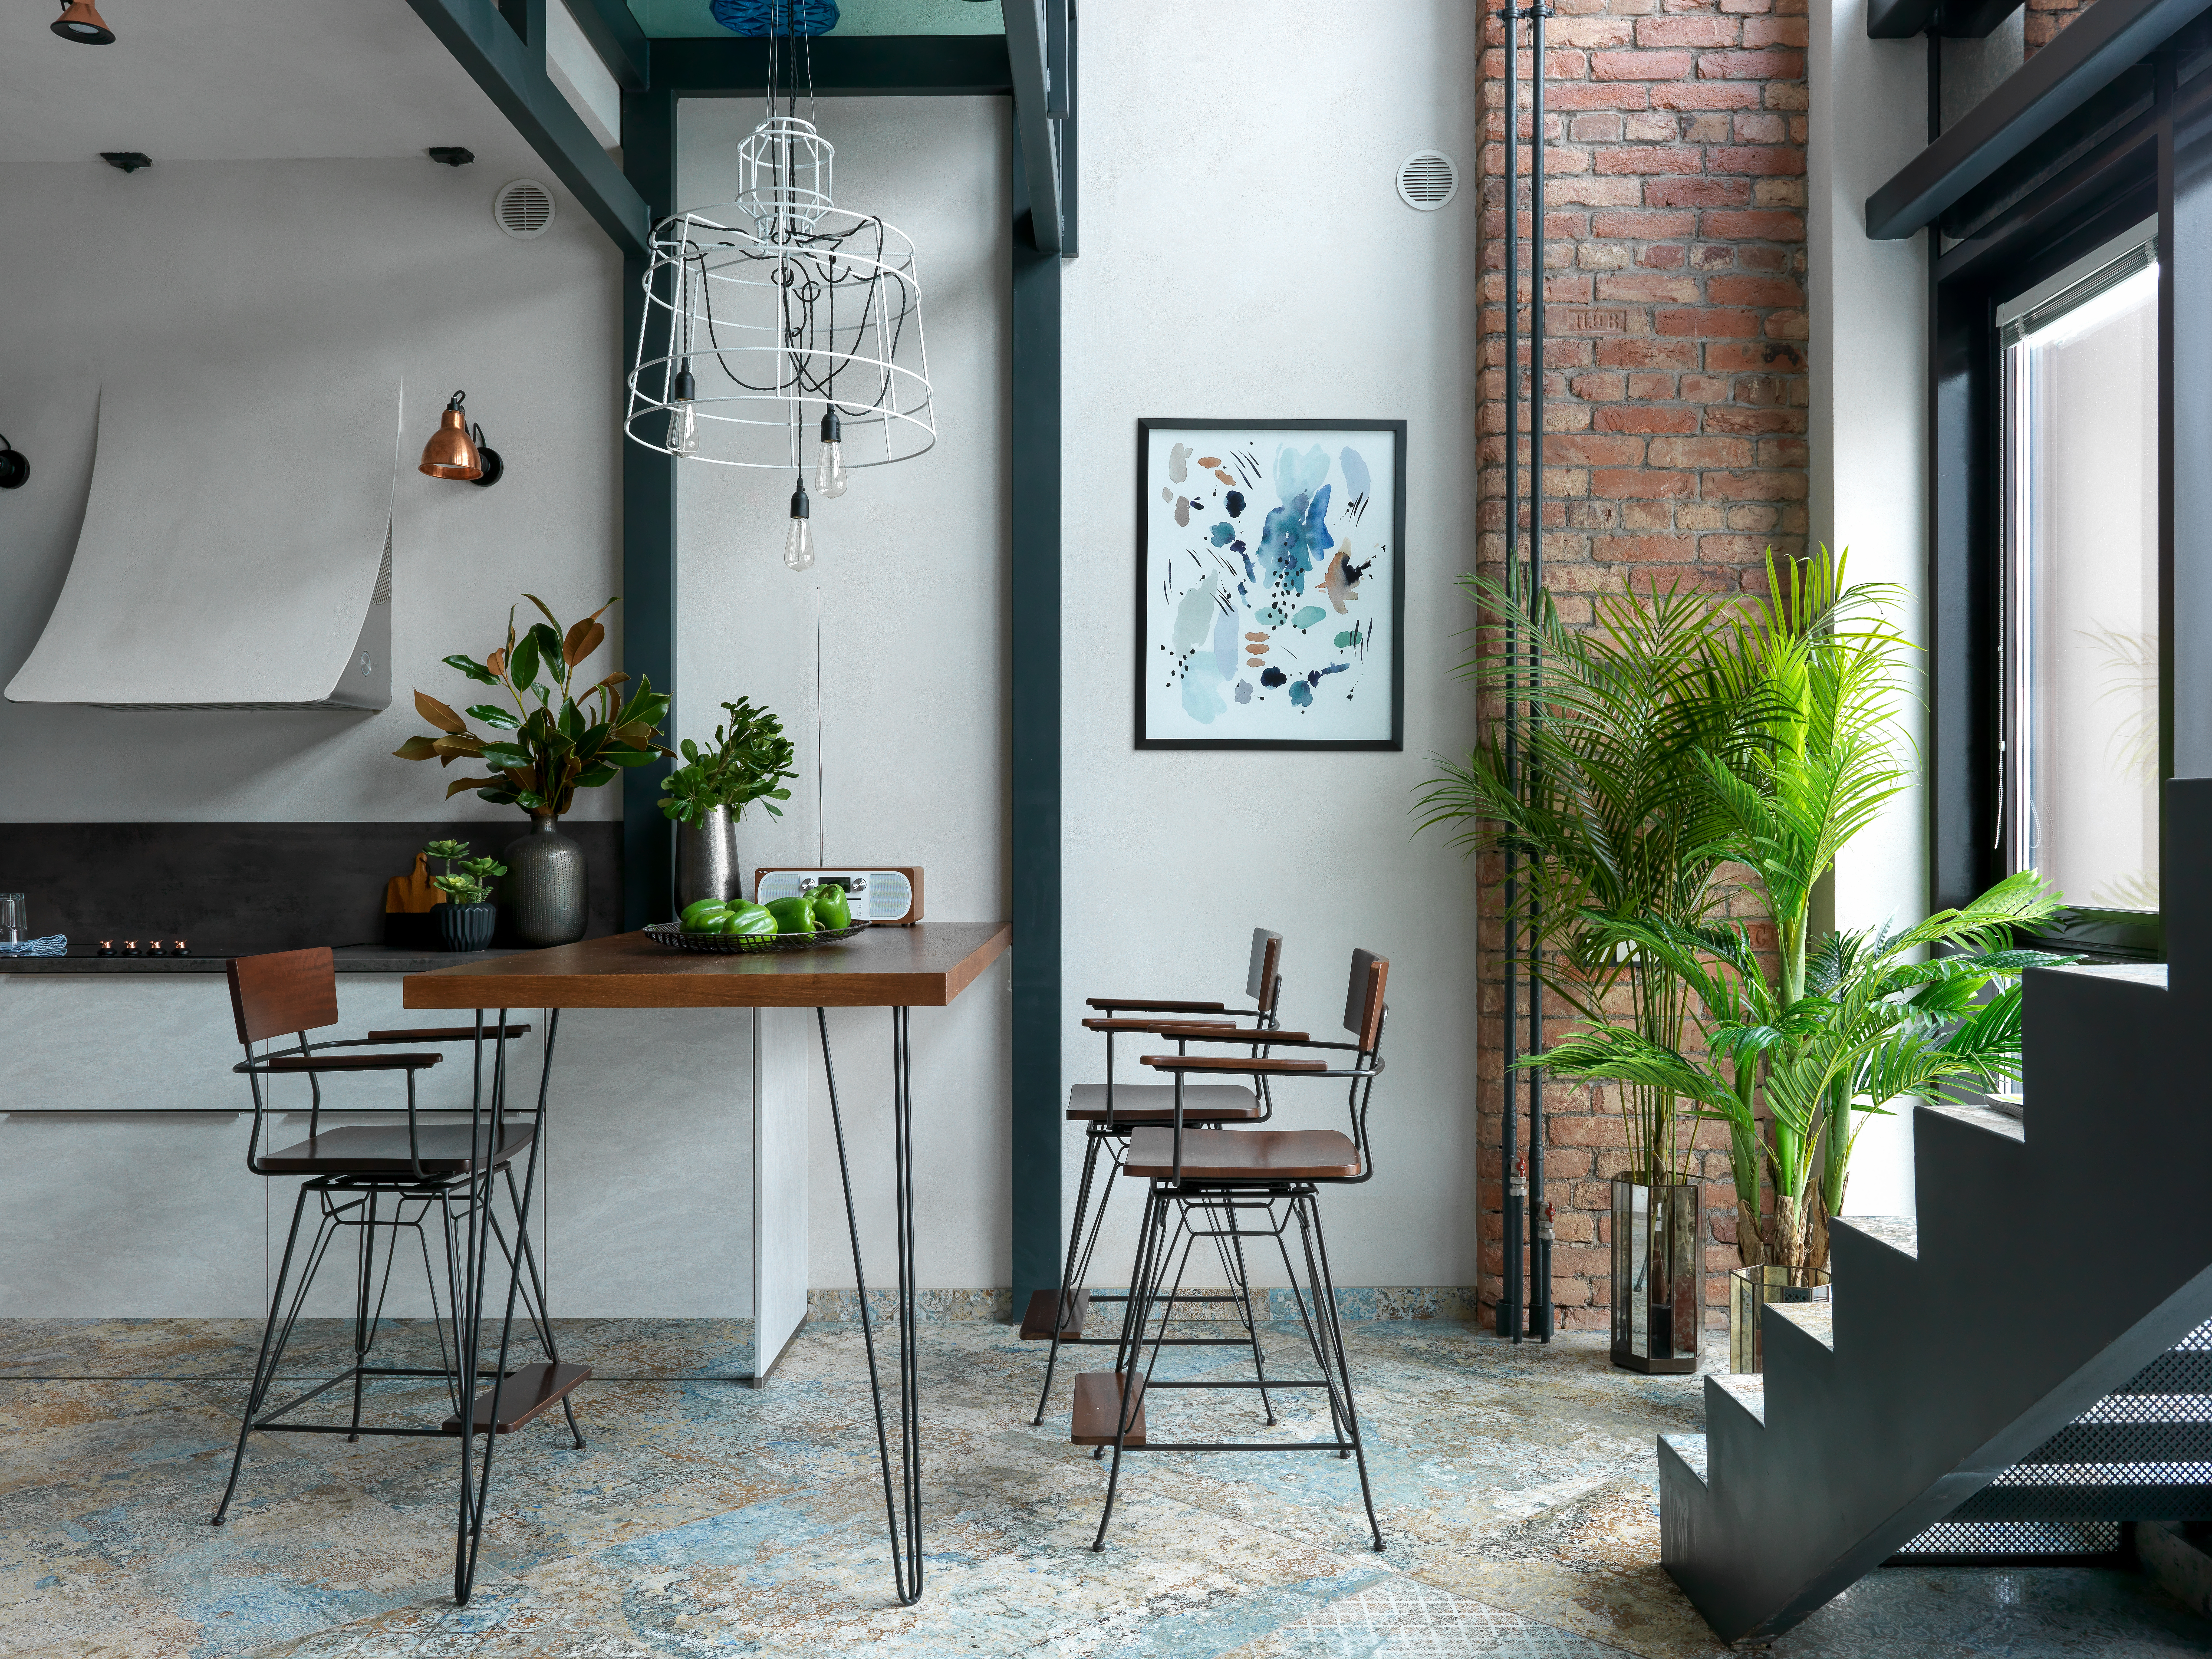 sisma 2 Industrial style suspension lamps